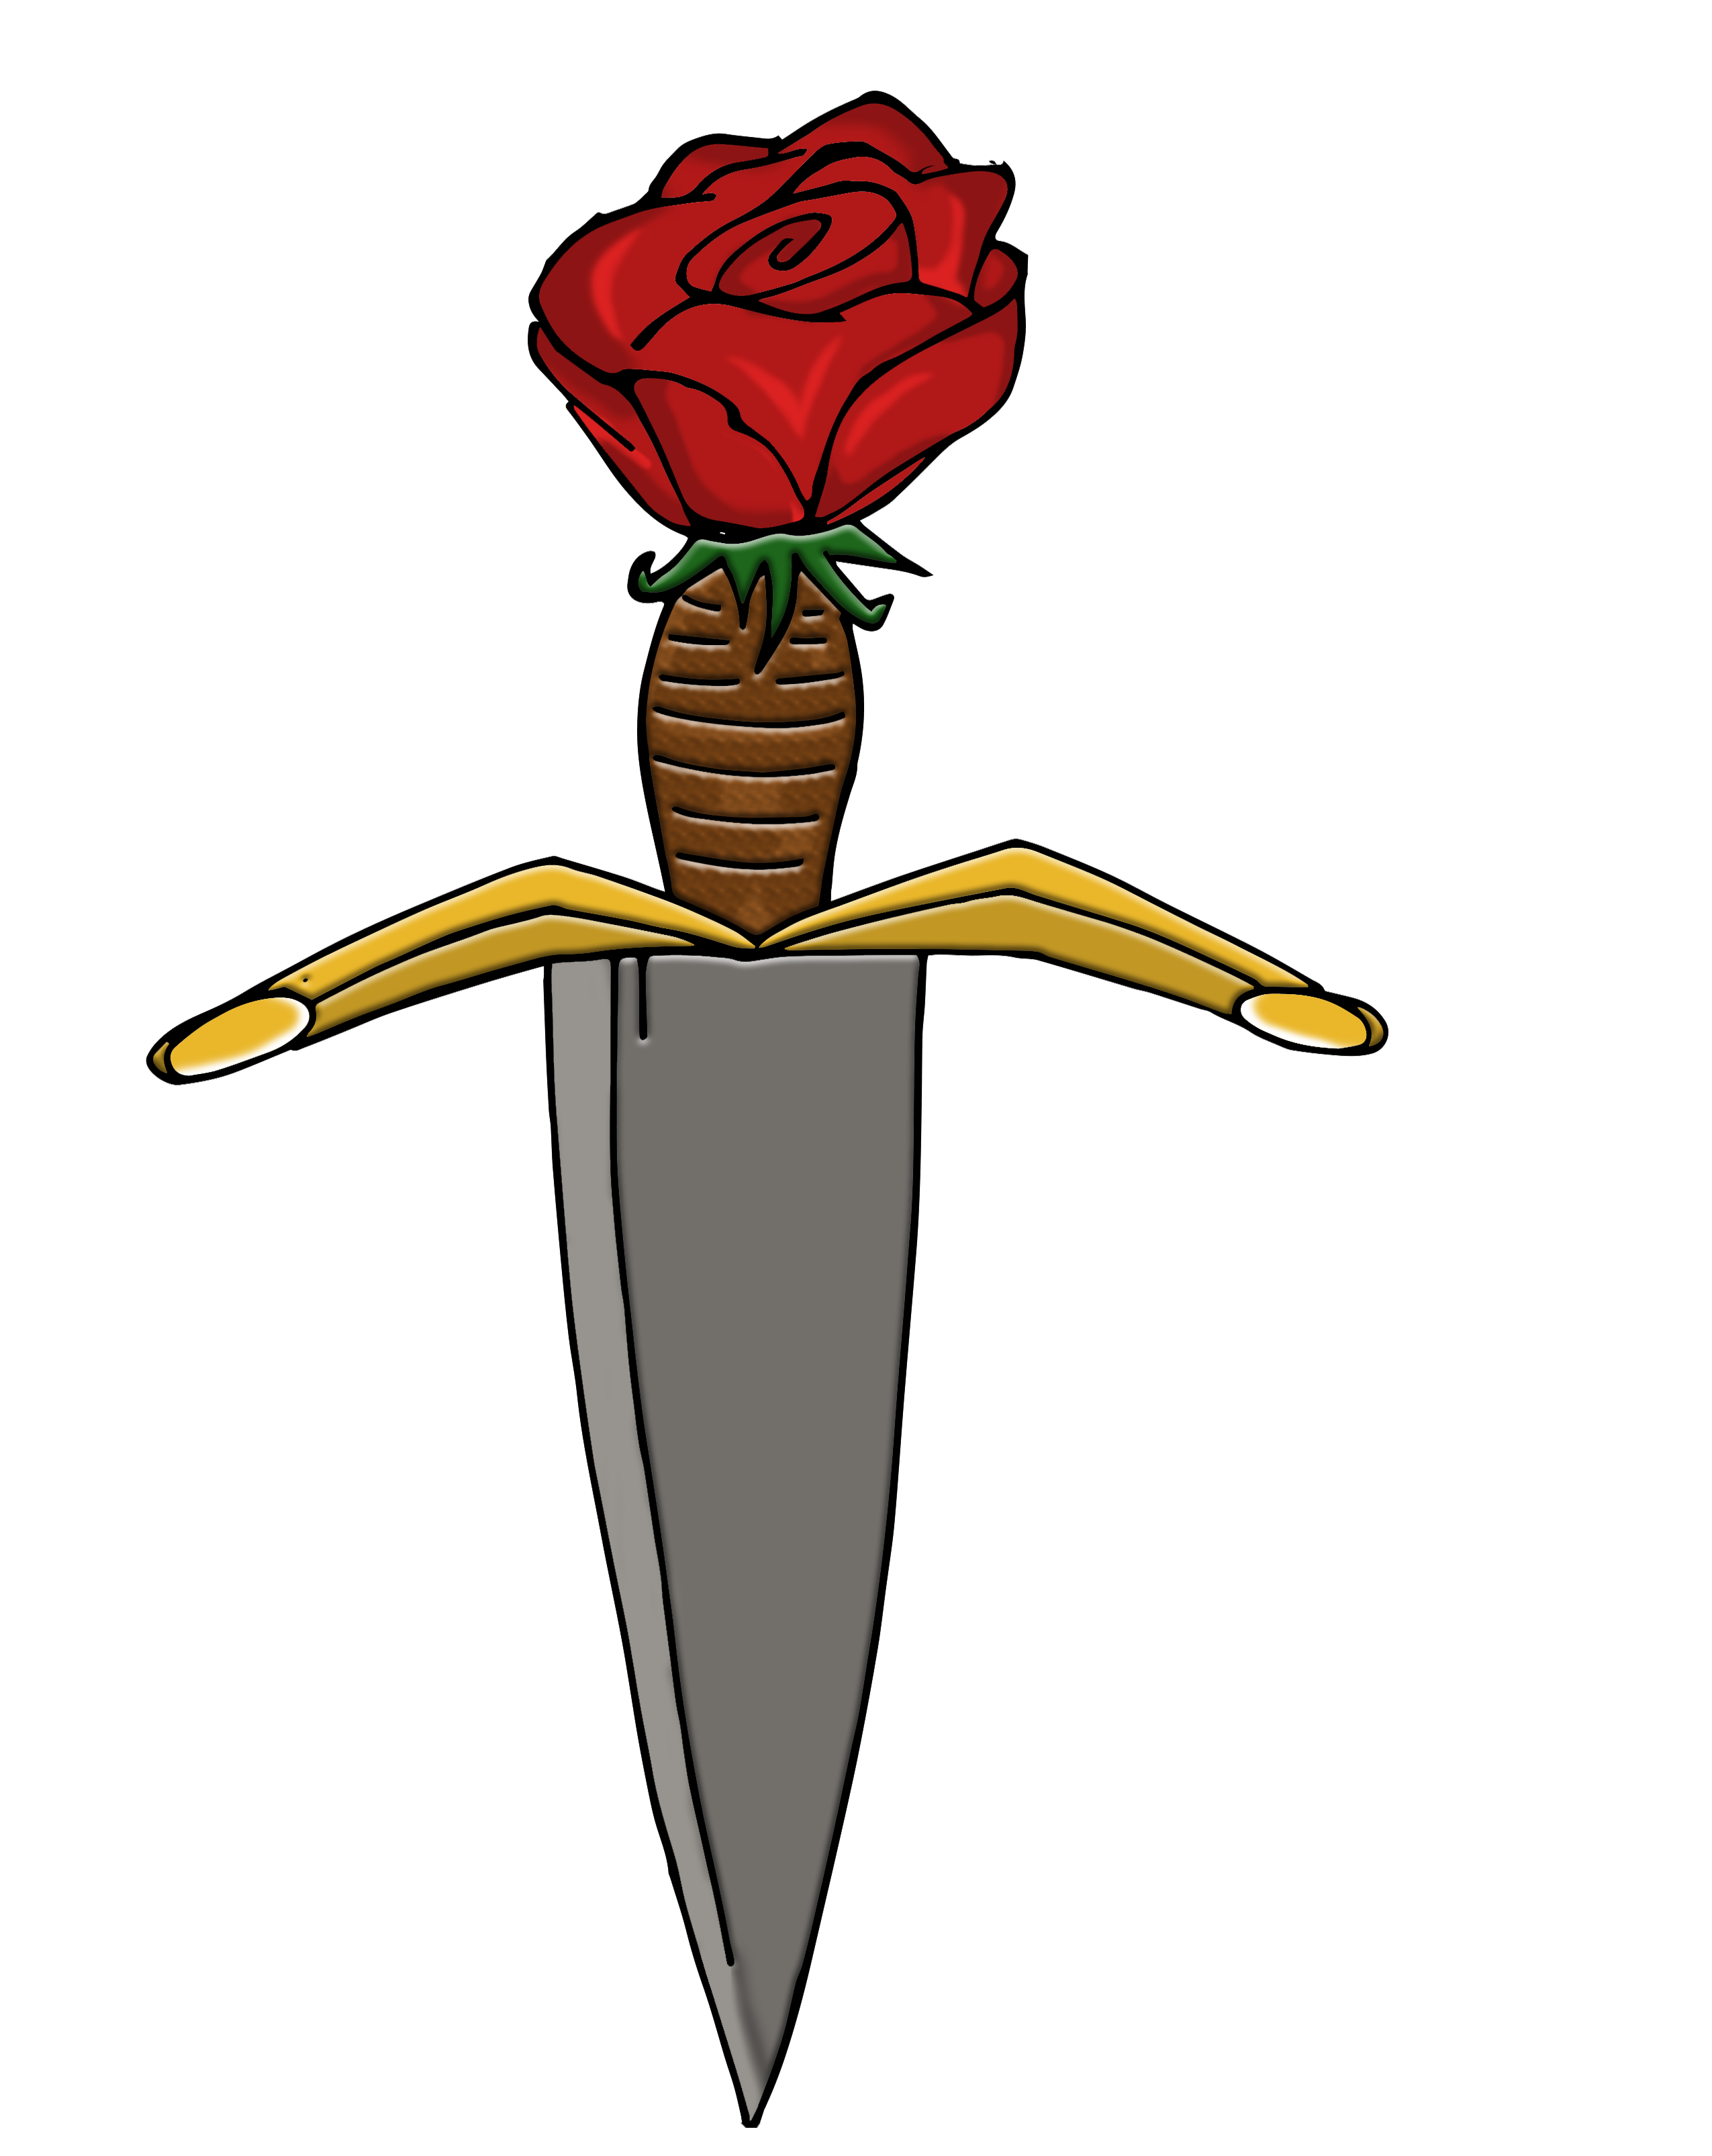 Romeo and juliet poster. Hearts clipart dagger